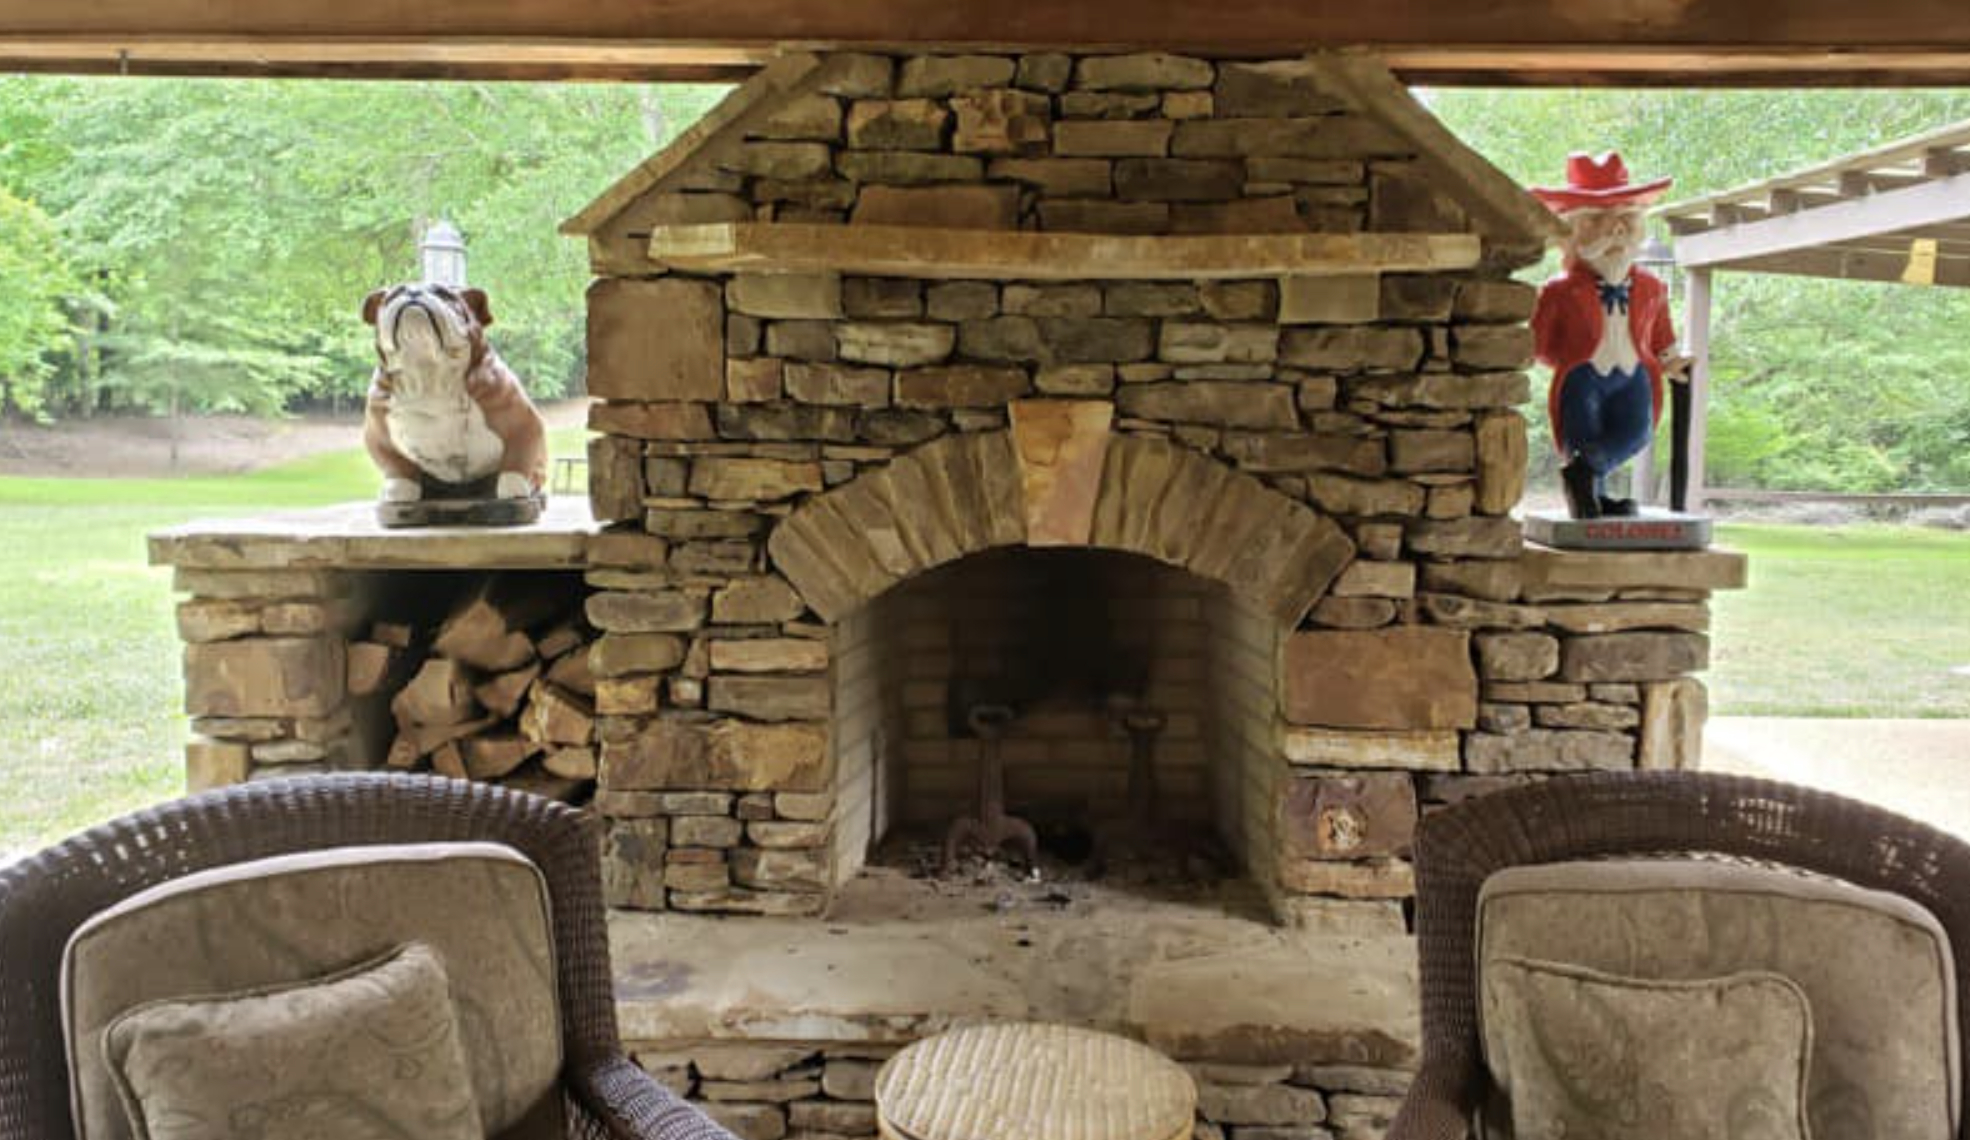 this image shows fireplace in Fremont, California